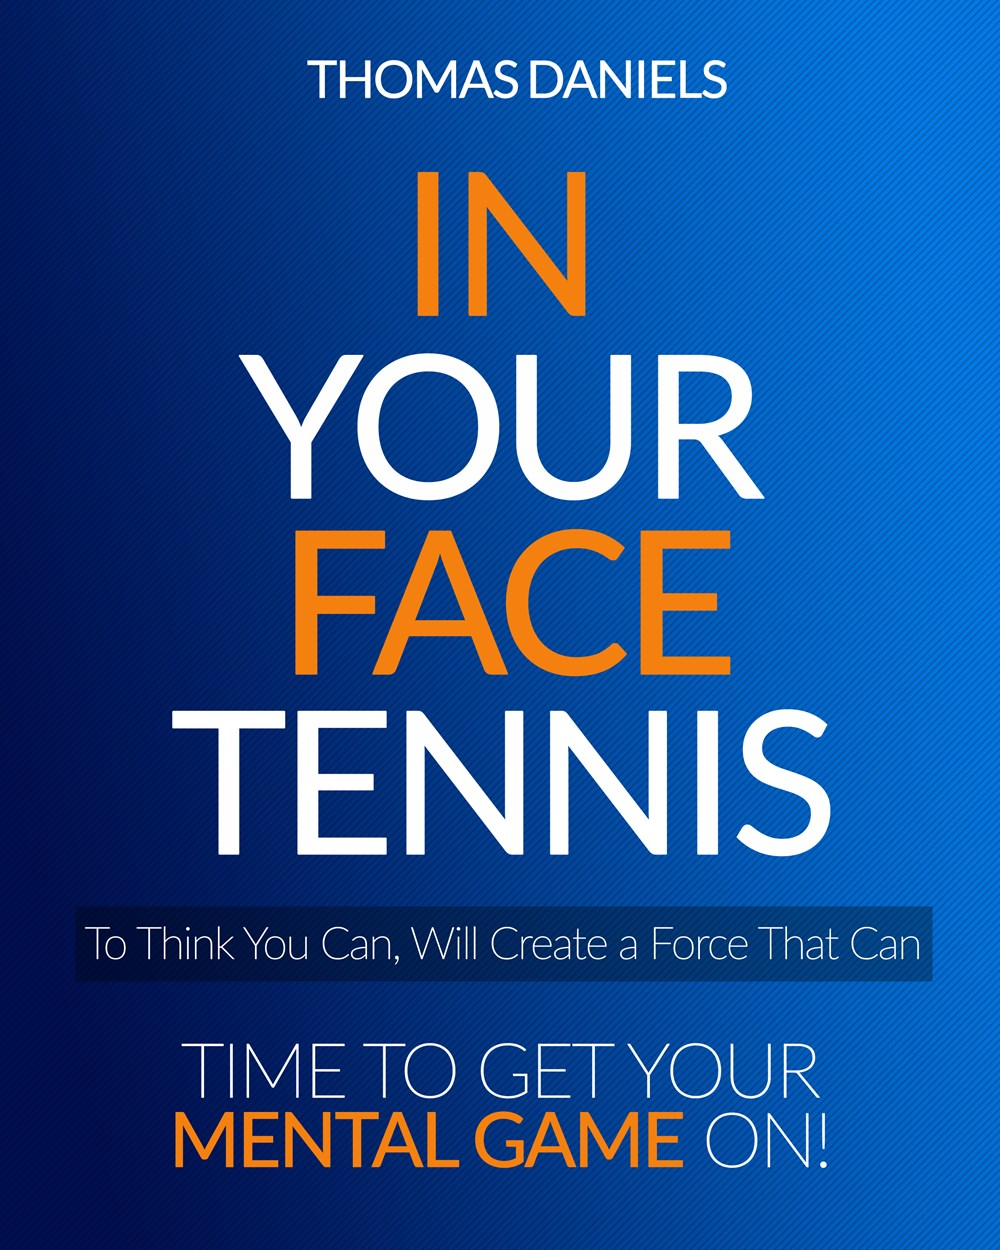 Tdanielsin_your_face_tennis_button_ad